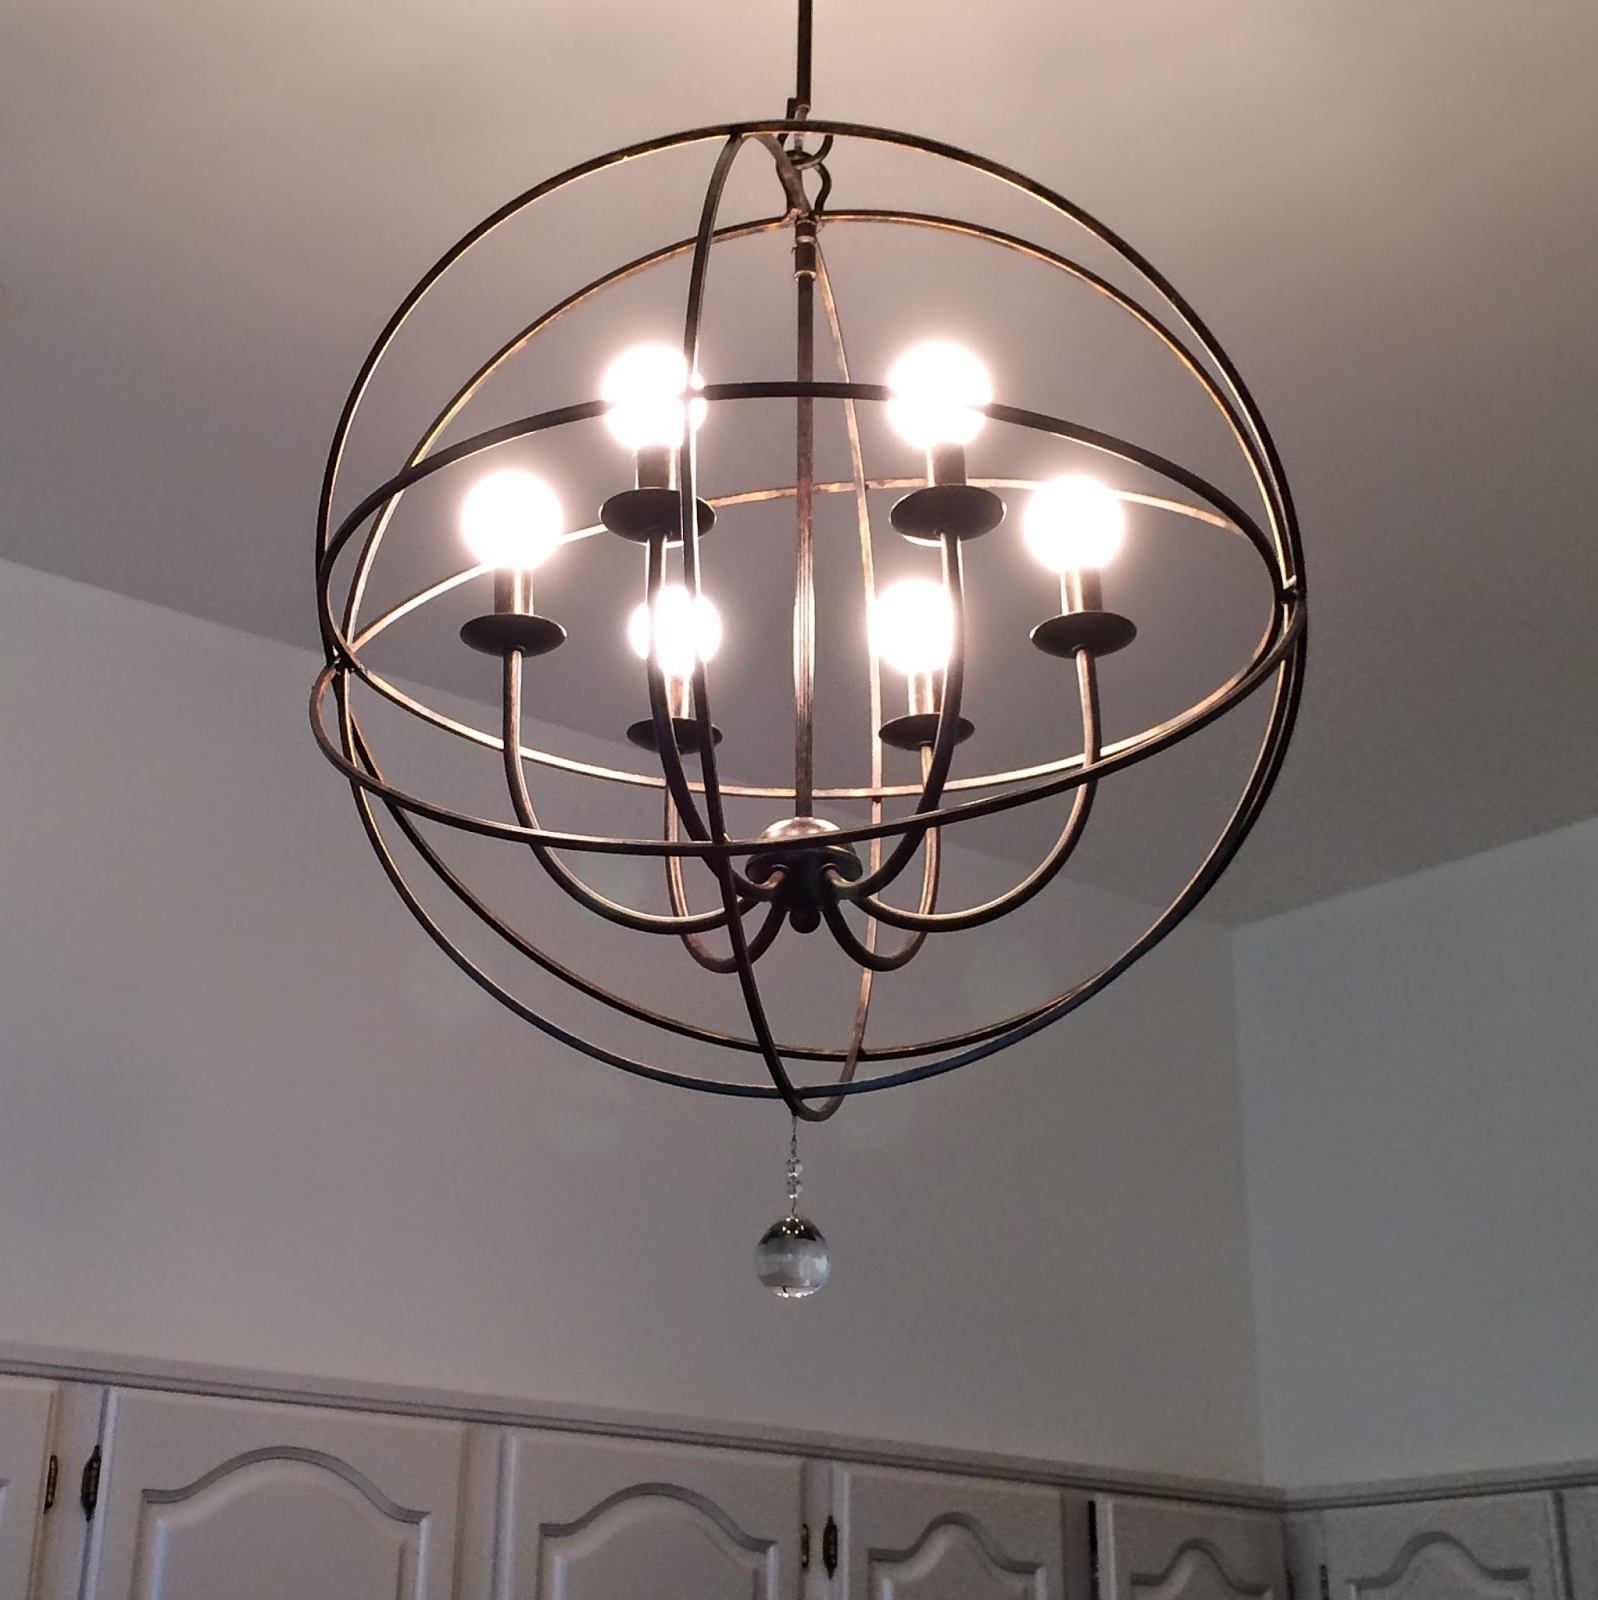 Well Known Lighting: Black Iron 6 Light Orb Chandelier For For Charming Kitchen With Orb Chandelier (View 10 of 15)